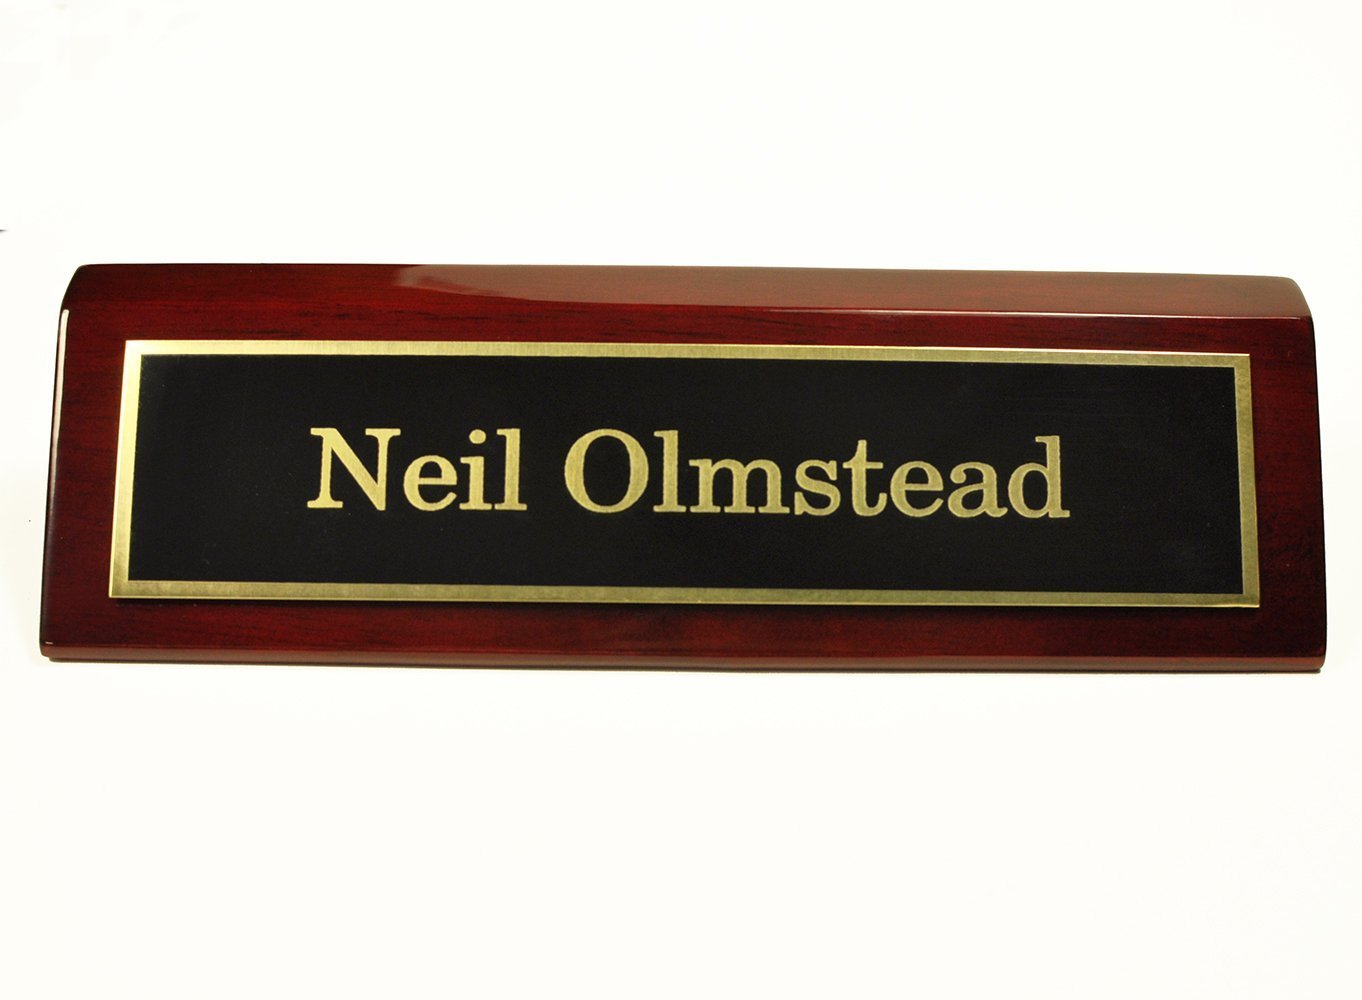 Rosewood Piano Finish Desk Name Plate 2 X 8 - Black Plate, Gold Engraving - Free Engraving by Griffco Supply